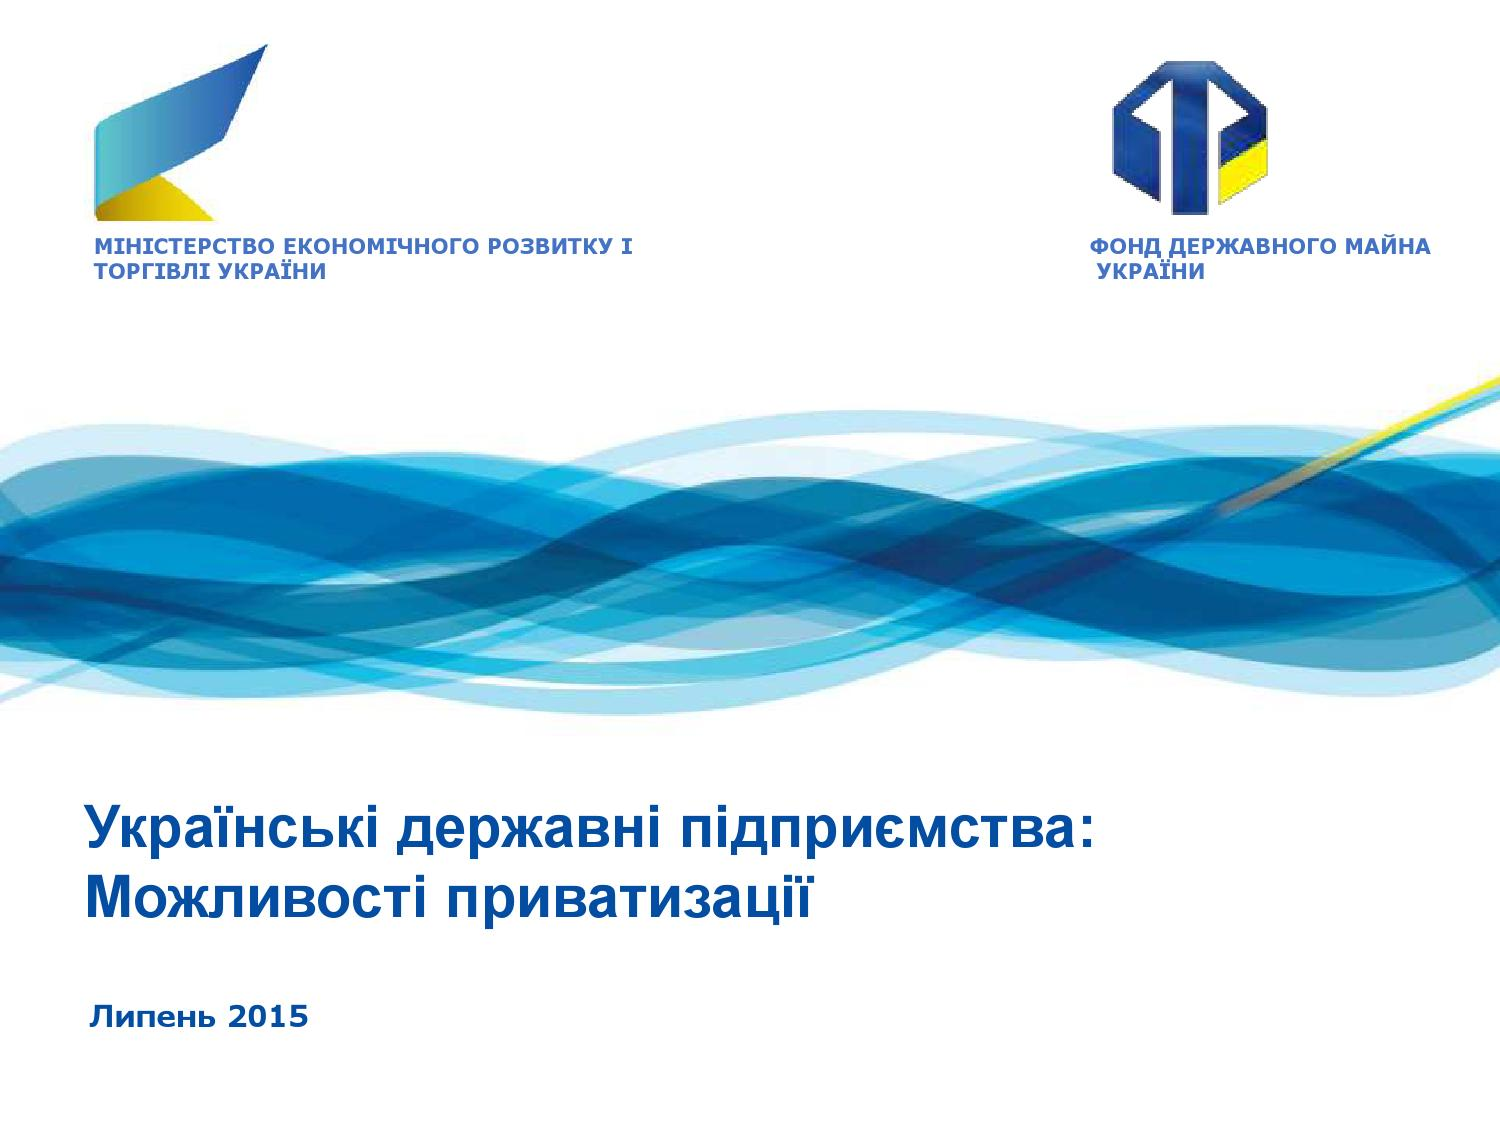 Можливості для приватизації в Україні by Ministry of Economic Development  and Trade of Ukraine - issuu a7183ca39b79a